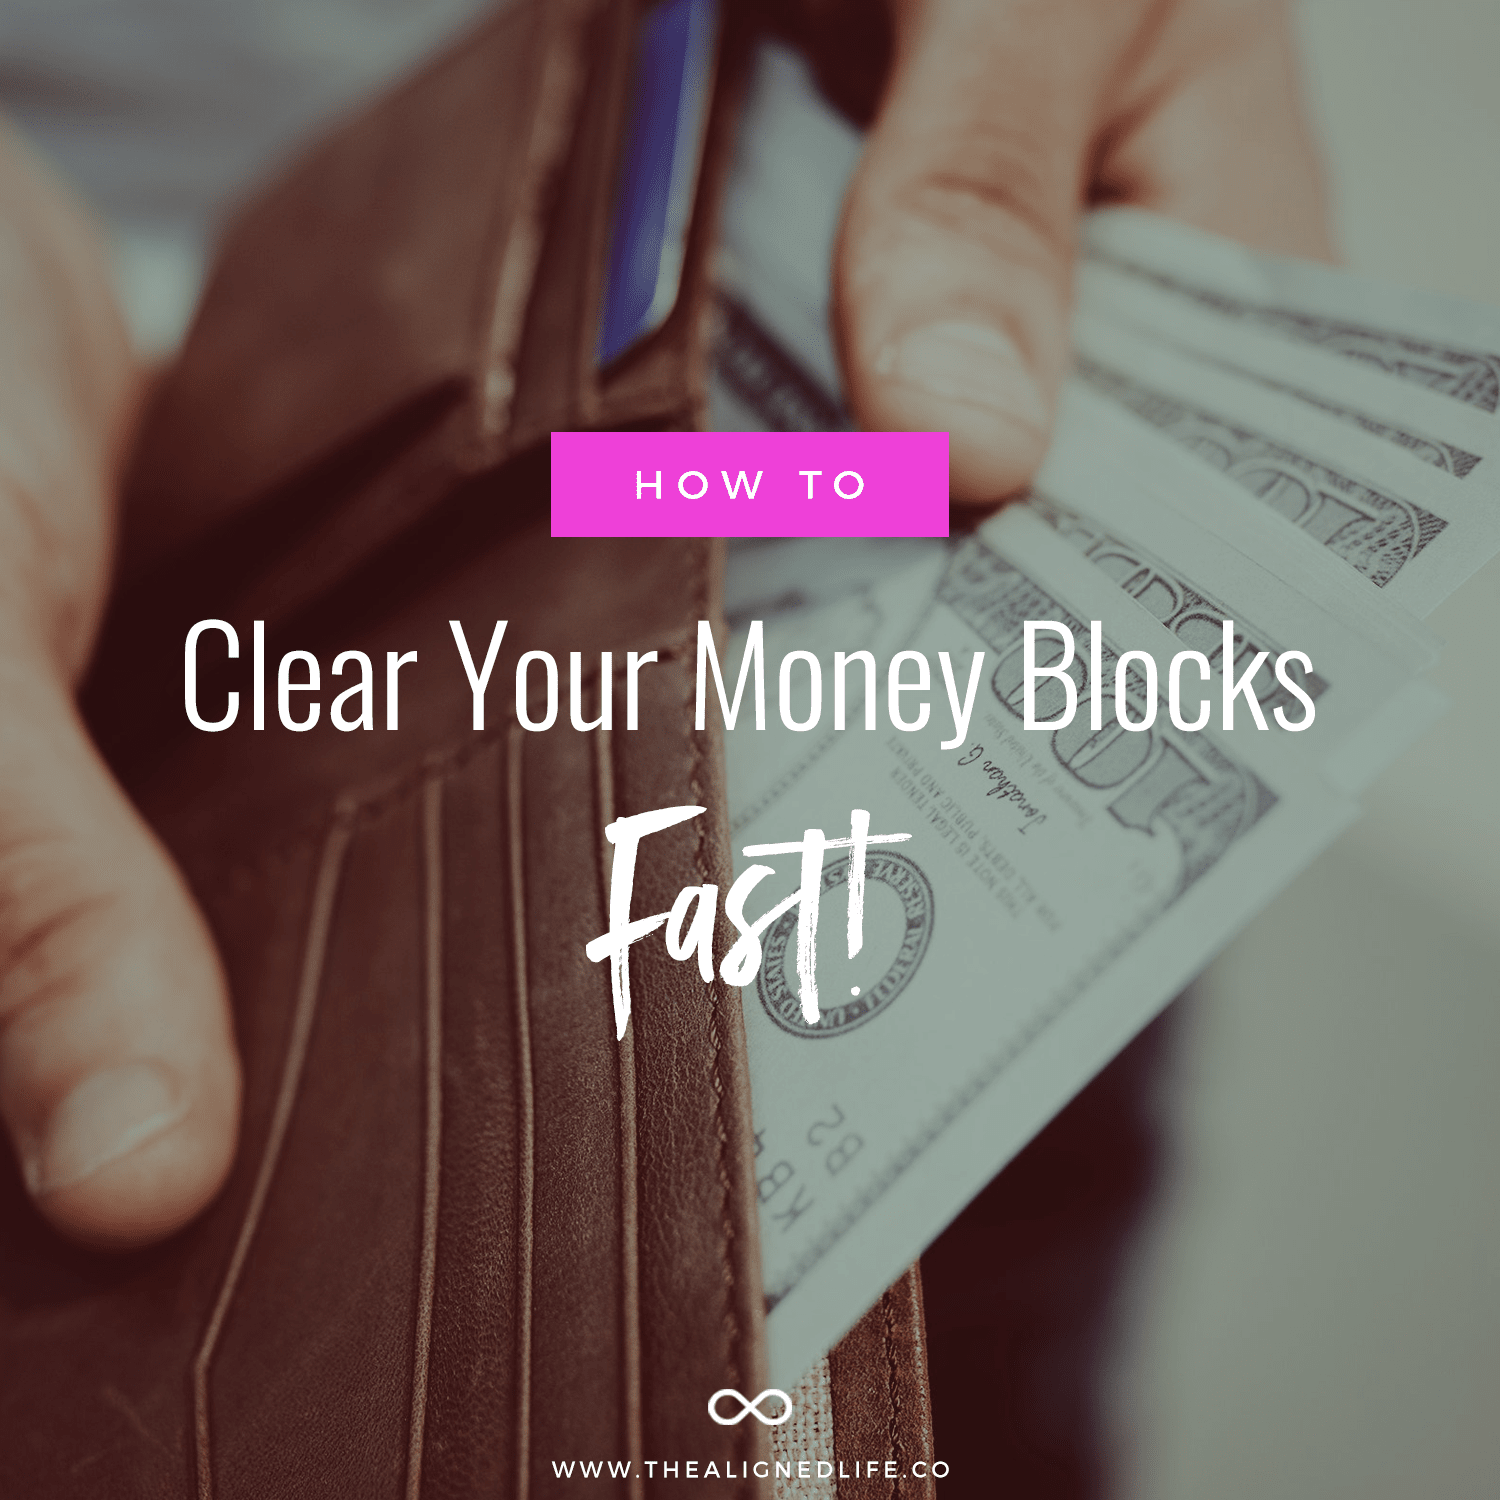 How To Clear Your Money Blocks Fast